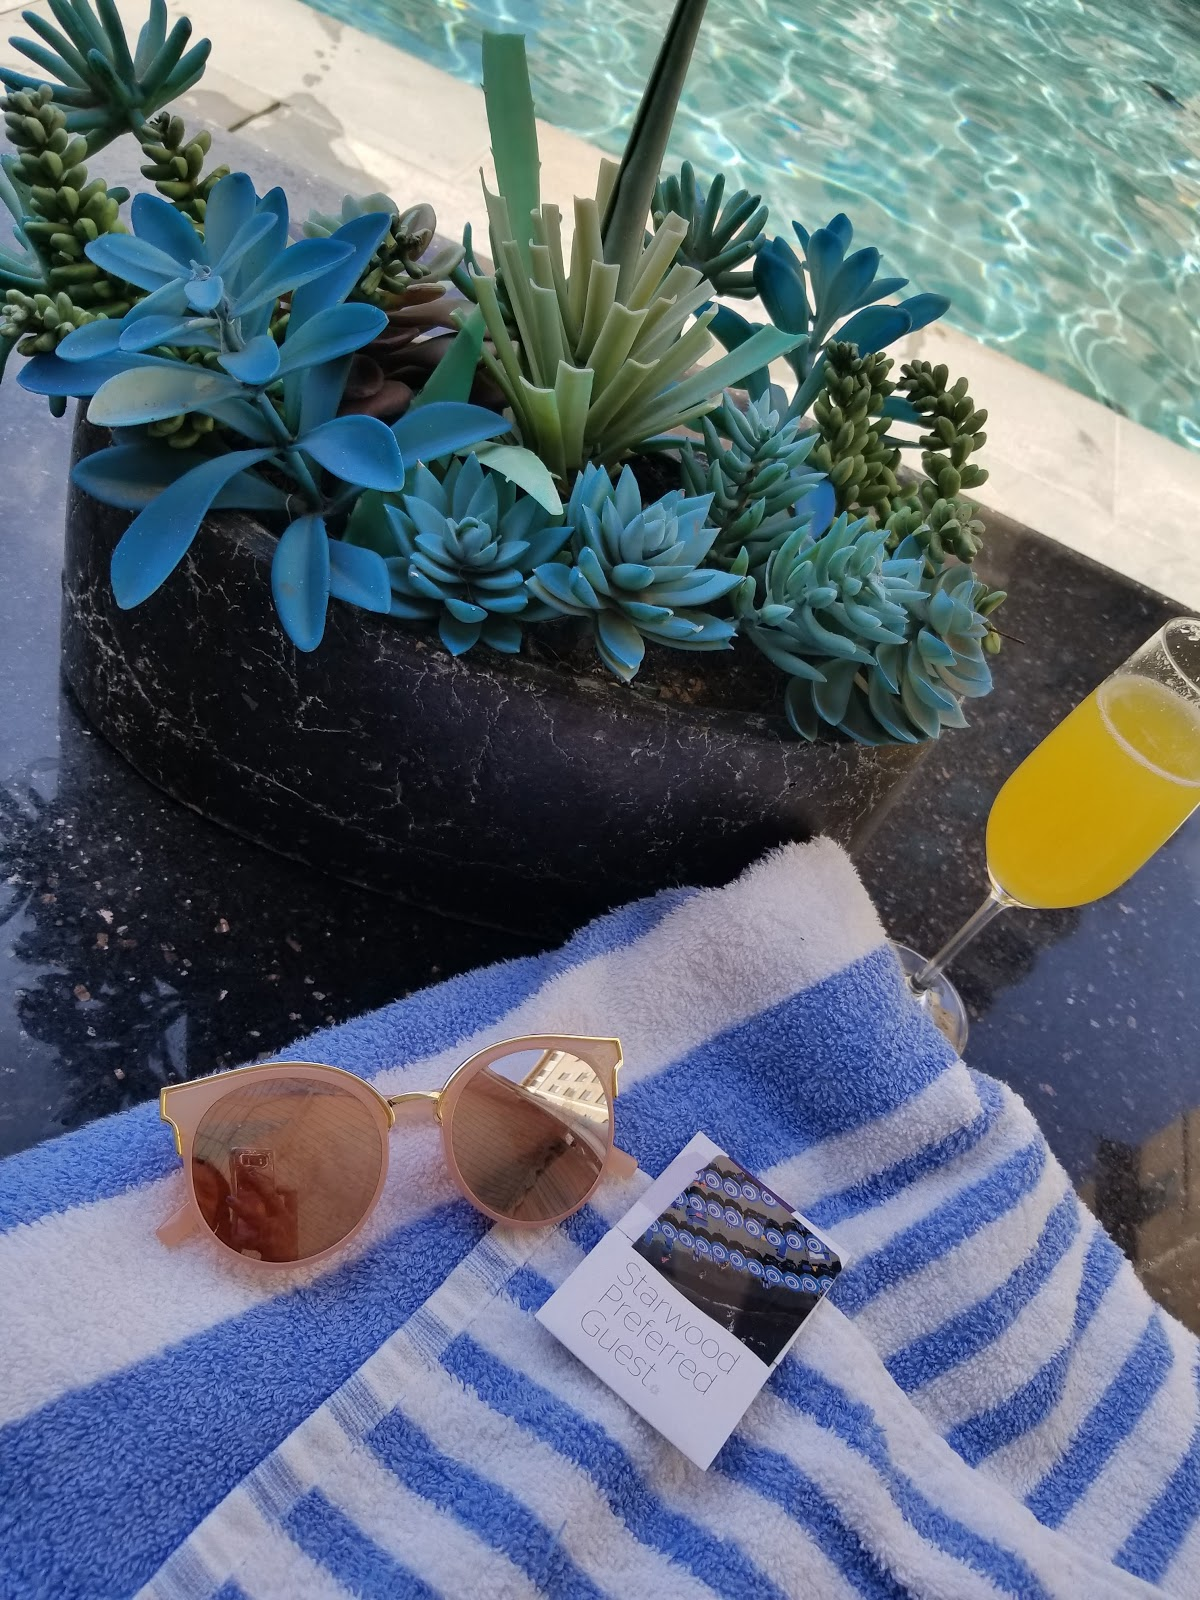 Sunglasses and mimosas poolside for the Starwood Preferred Guest